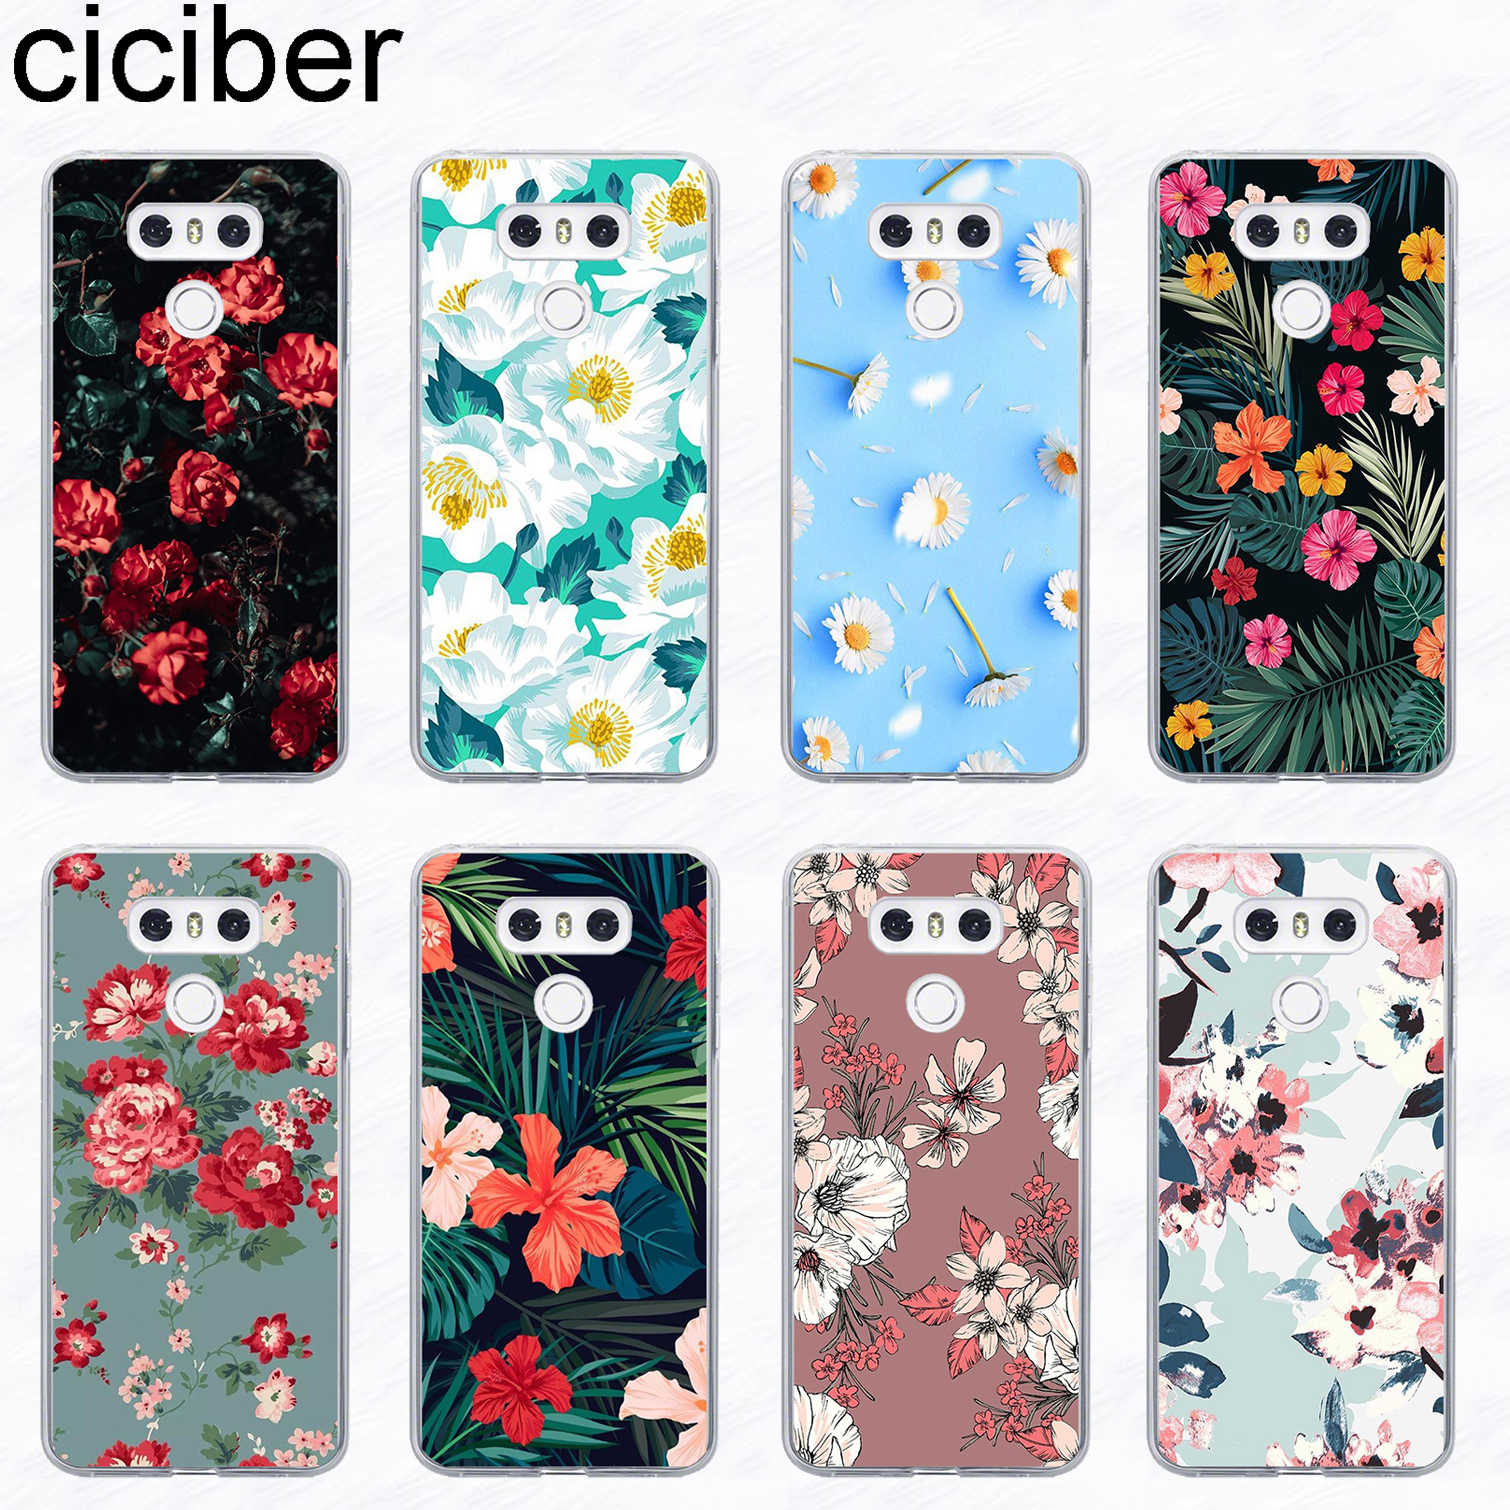 ciciber Flower Rose Phone Case For LG G6 G7 G5 G4 V20 V30 V35 V40 THINQ Soft TPU For LG K8 K7 K10 K4 K9 K11 2017 2018 Plus Funda